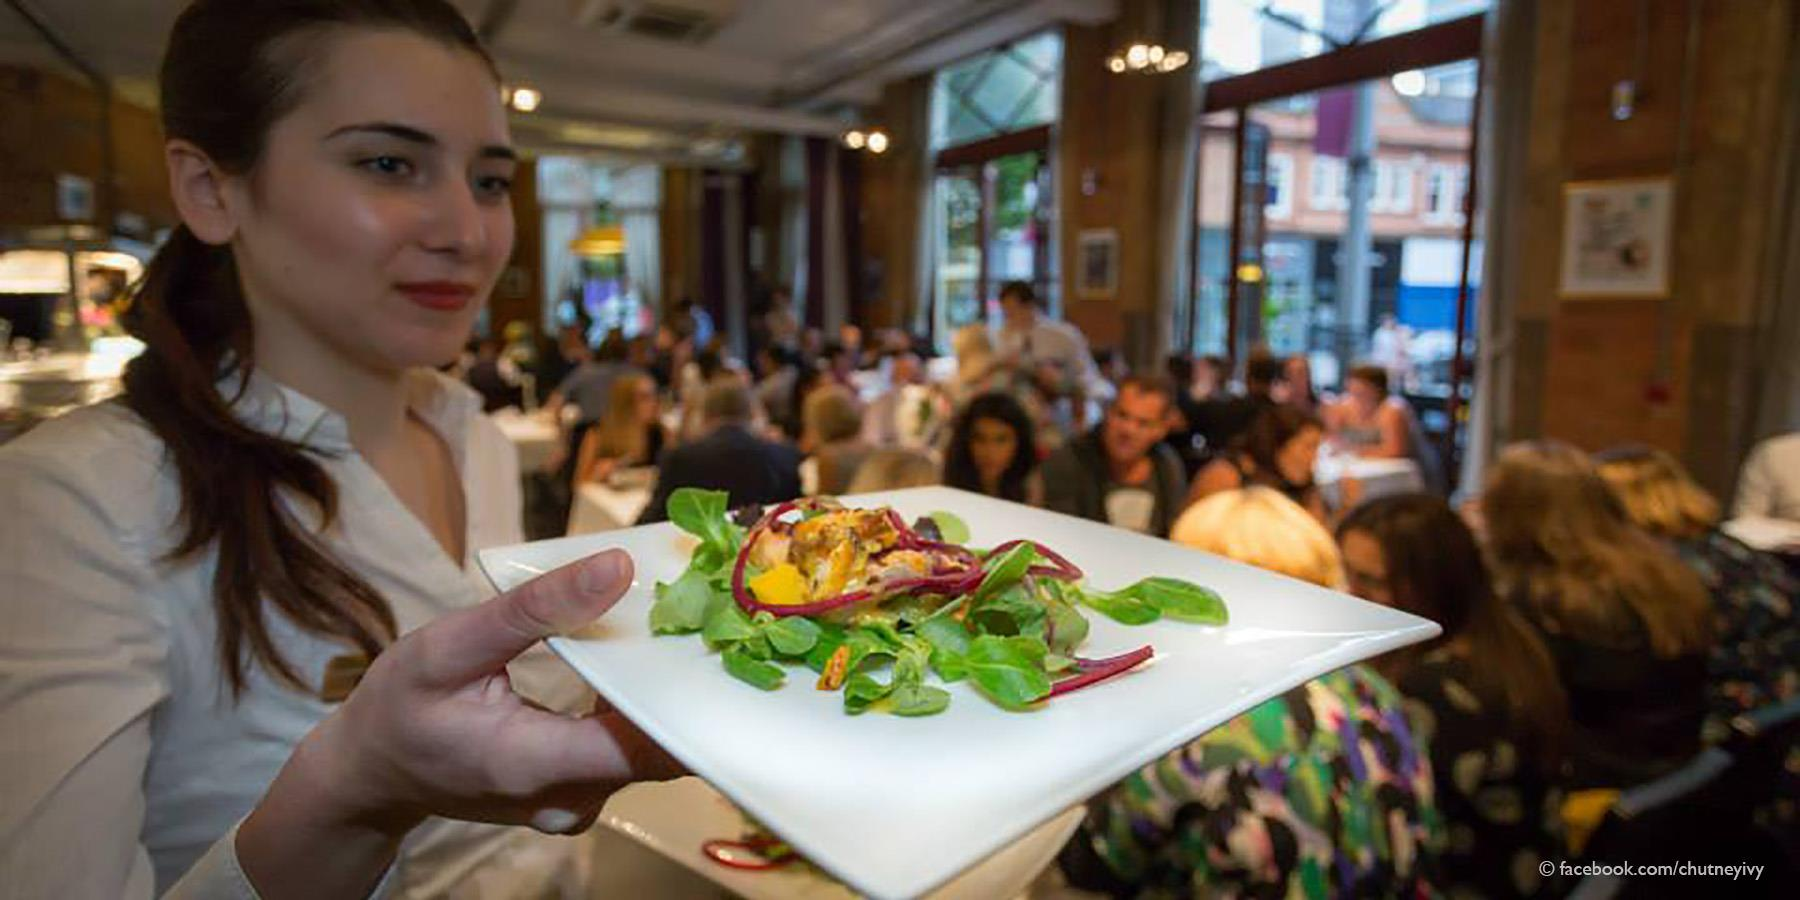 Chutney Ivy, Restaurants - Eating and Drinking in Leicester